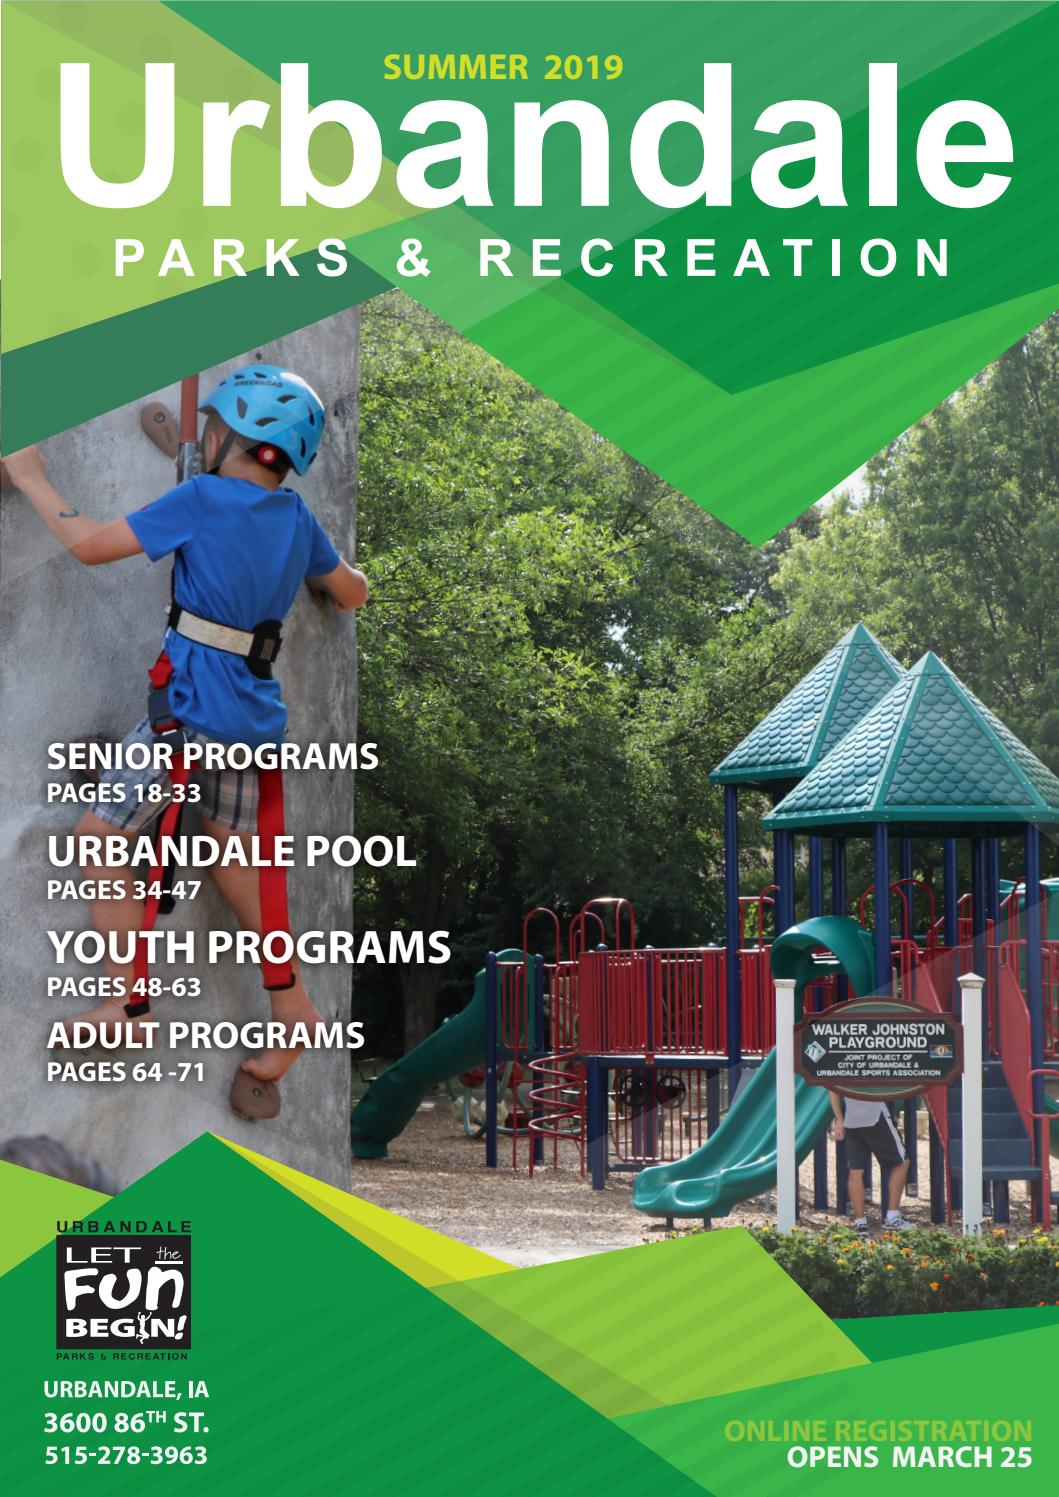 2019 Summer Program Guide by Urbandale Parks and Recreation